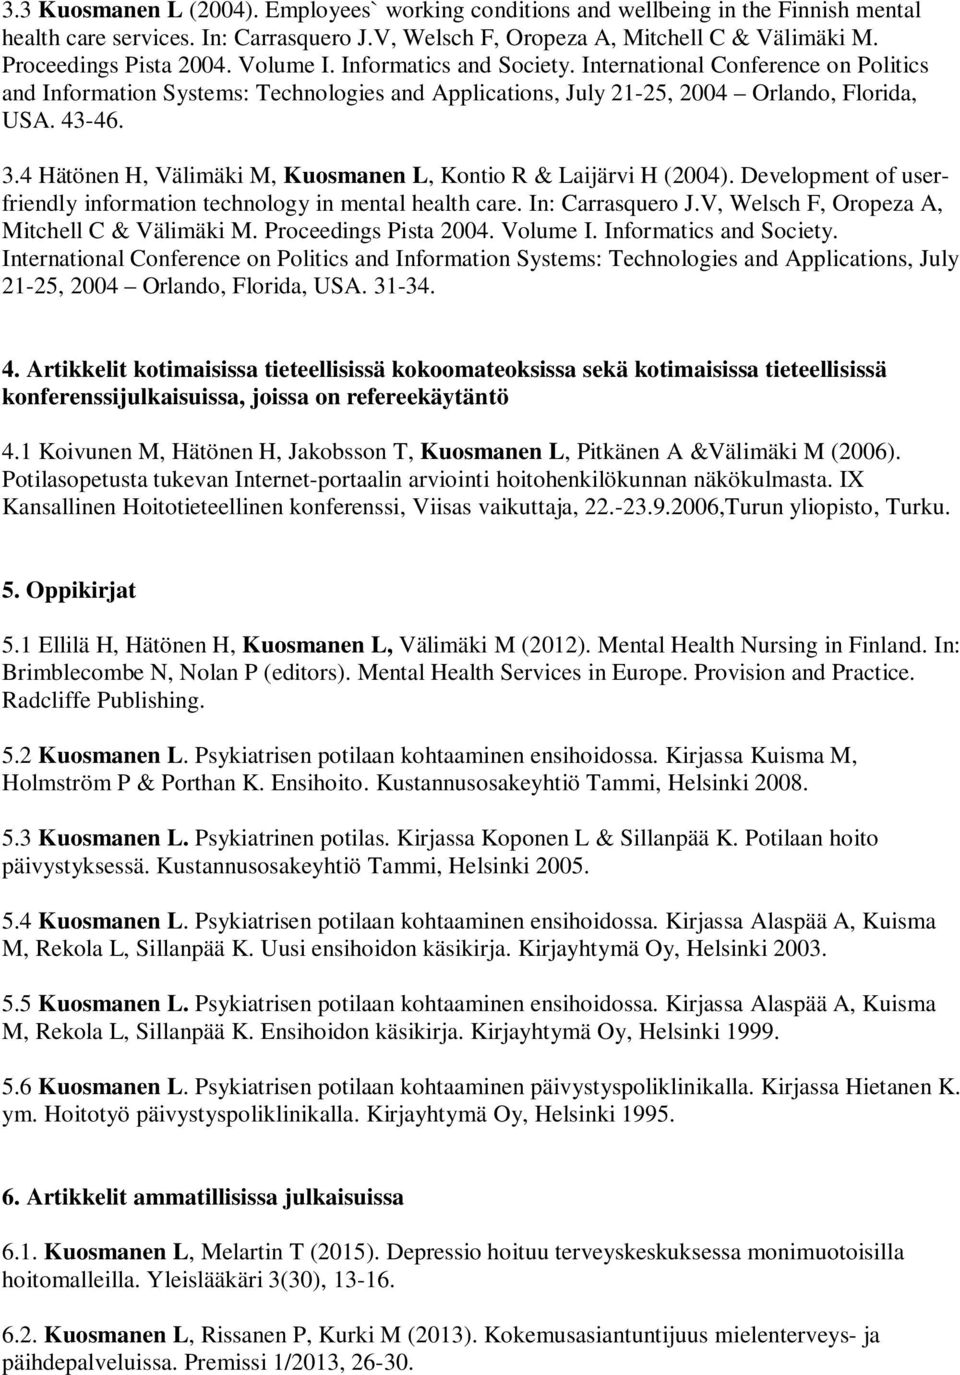 3.4 Hätönen H, Välimäki M, Kuosmanen L, Kontio R & Laijärvi H (2004). Development of userfriendly information technology in mental health care. In: Carrasquero J.